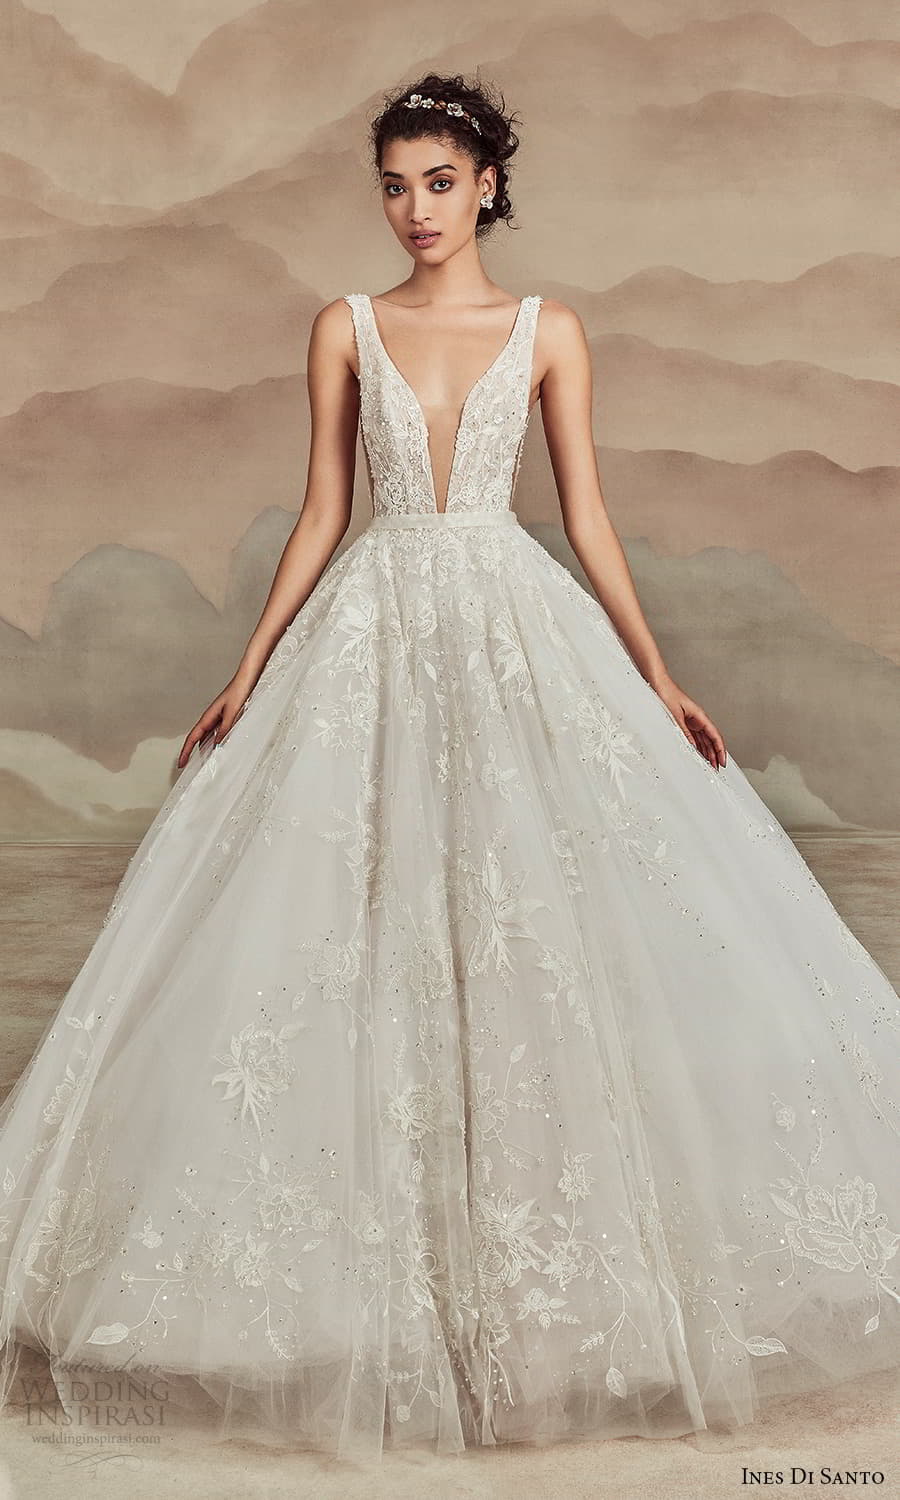 ines di santo spring 2022 bridal sleeveless straps plunging v neckline fully embellished a line ball gown wedding dress chapel train (8) mv